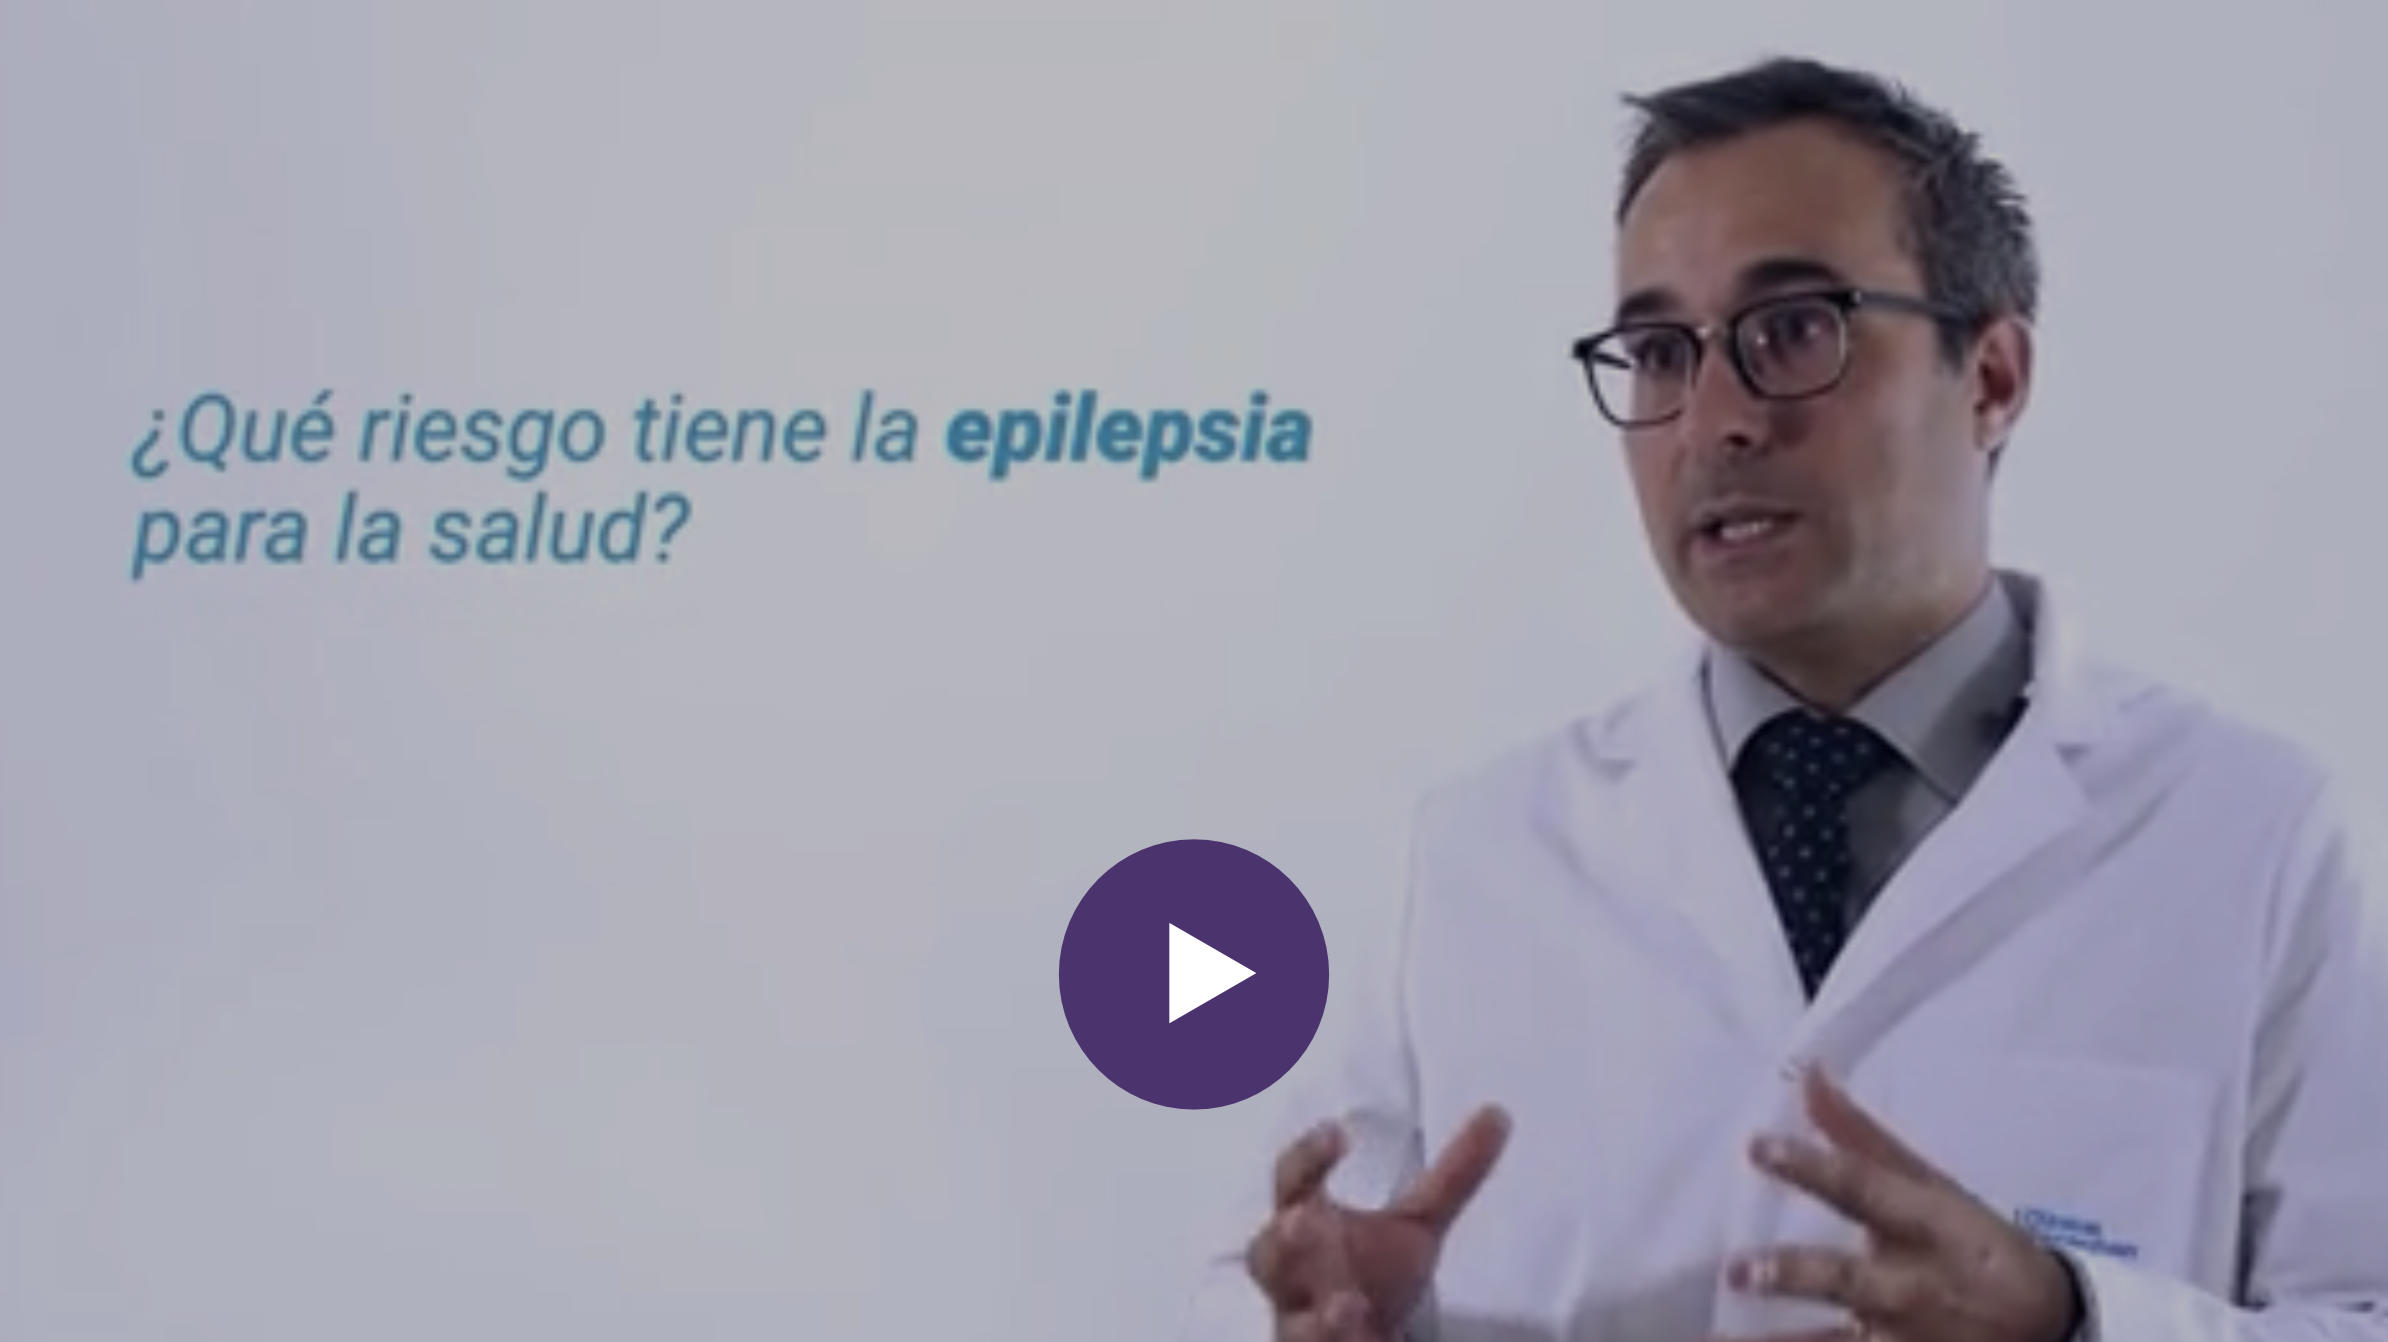 Epilepsy, what is the real health risk?